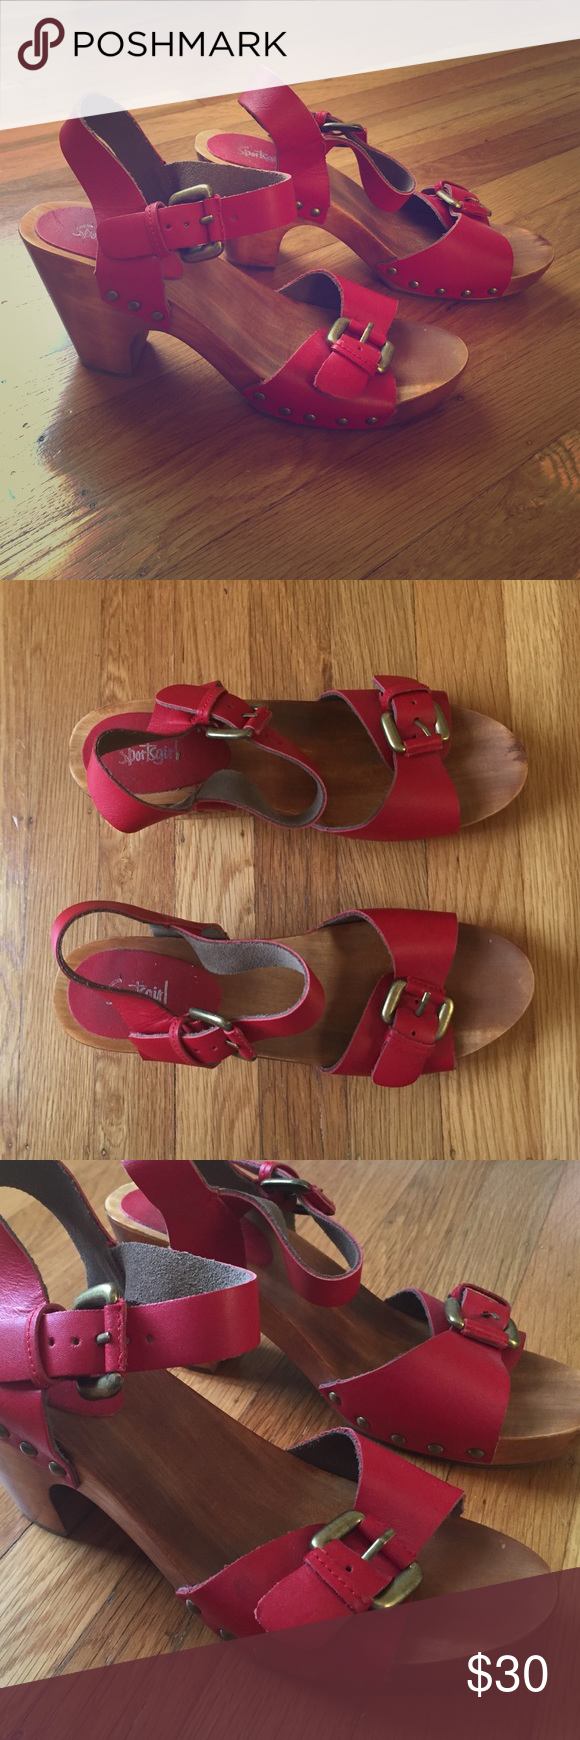 Red clog sandals Wooden clog sandals with red leather straps and gold buckle detailing. 3 inch block heel. Really cute with jeans or dresses!! Flirty and girly. Shoes Sandals